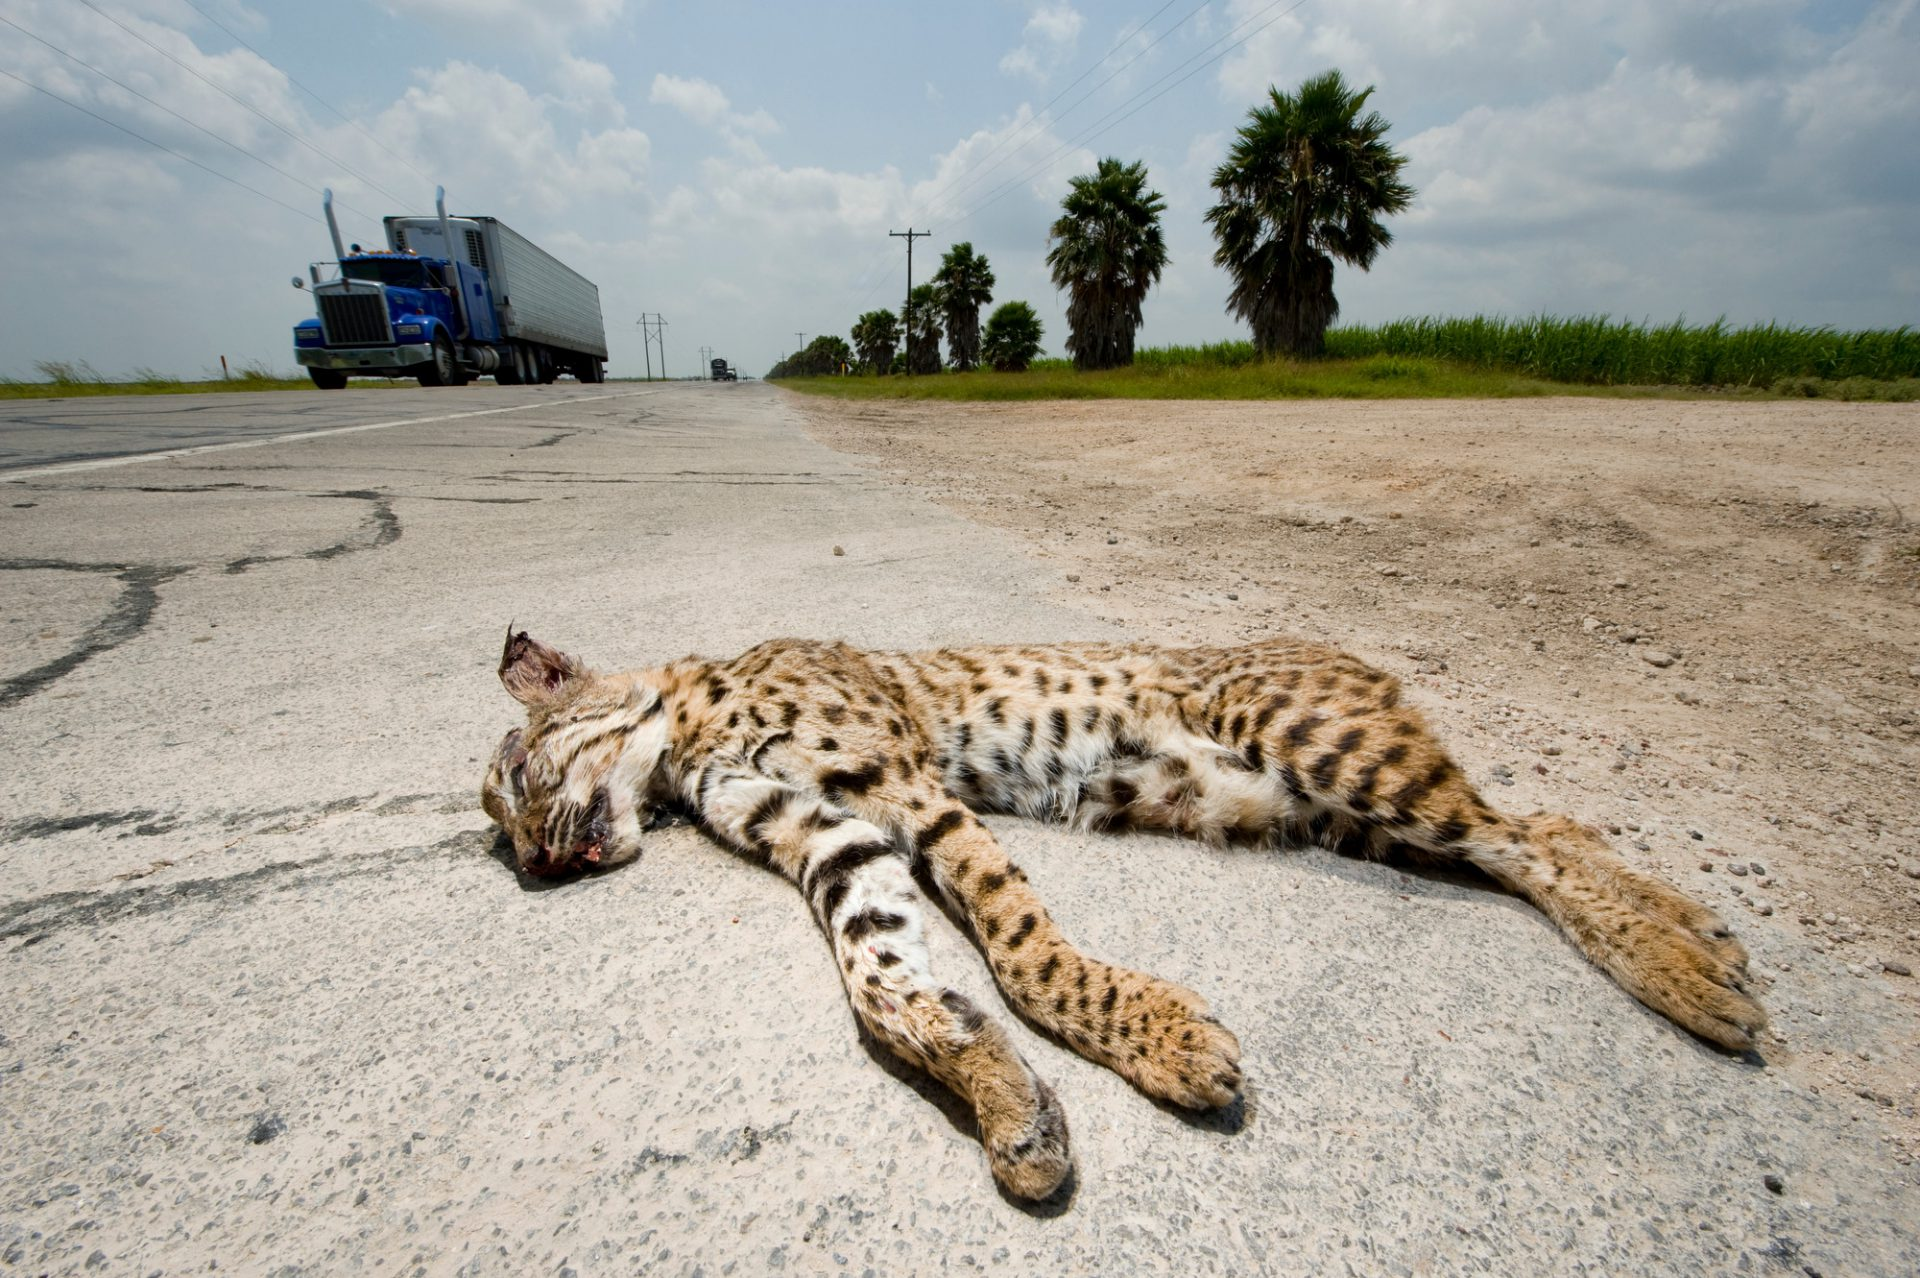 A road-killed bobcat (Lynx rufus) that has been placed along a highway near the Santa Anna NWR.